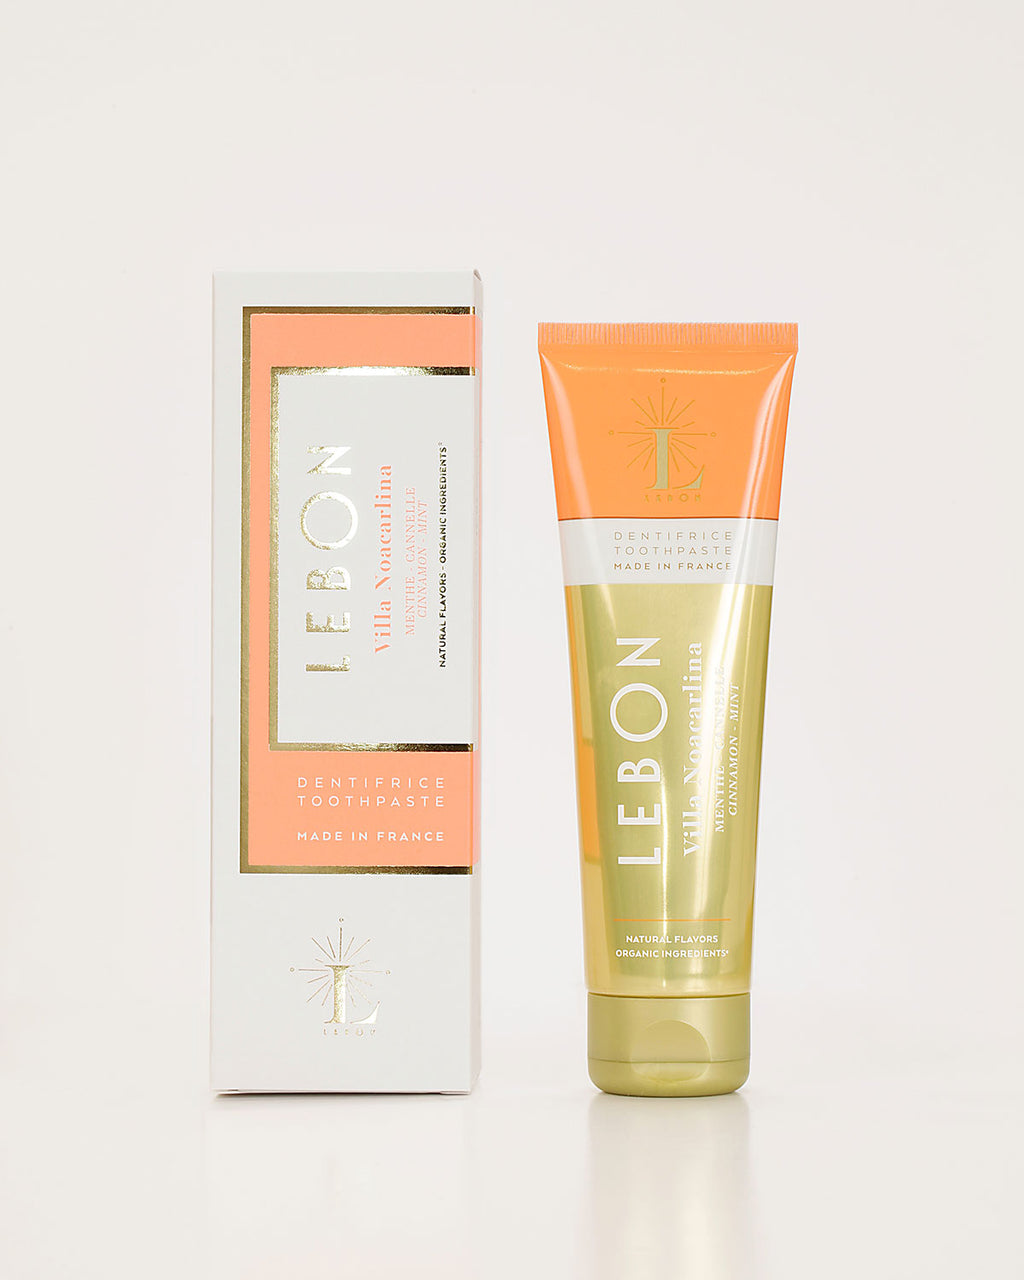 LeBon VIA NOACARLINA Toothpaste 2.5oz/74 ML